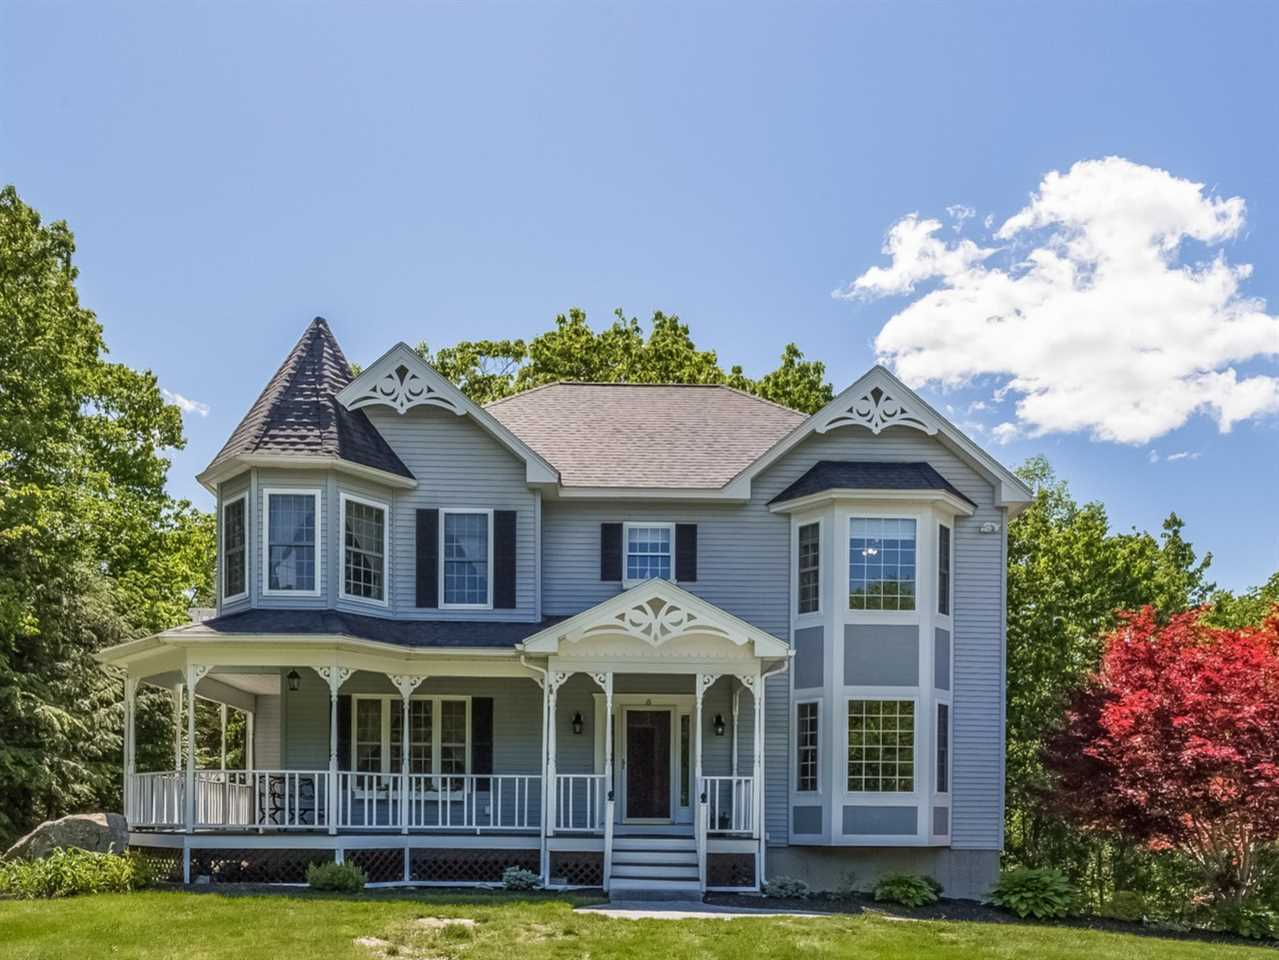 Photo of 5 JENNYS HILL ROAD Windham NH 03087